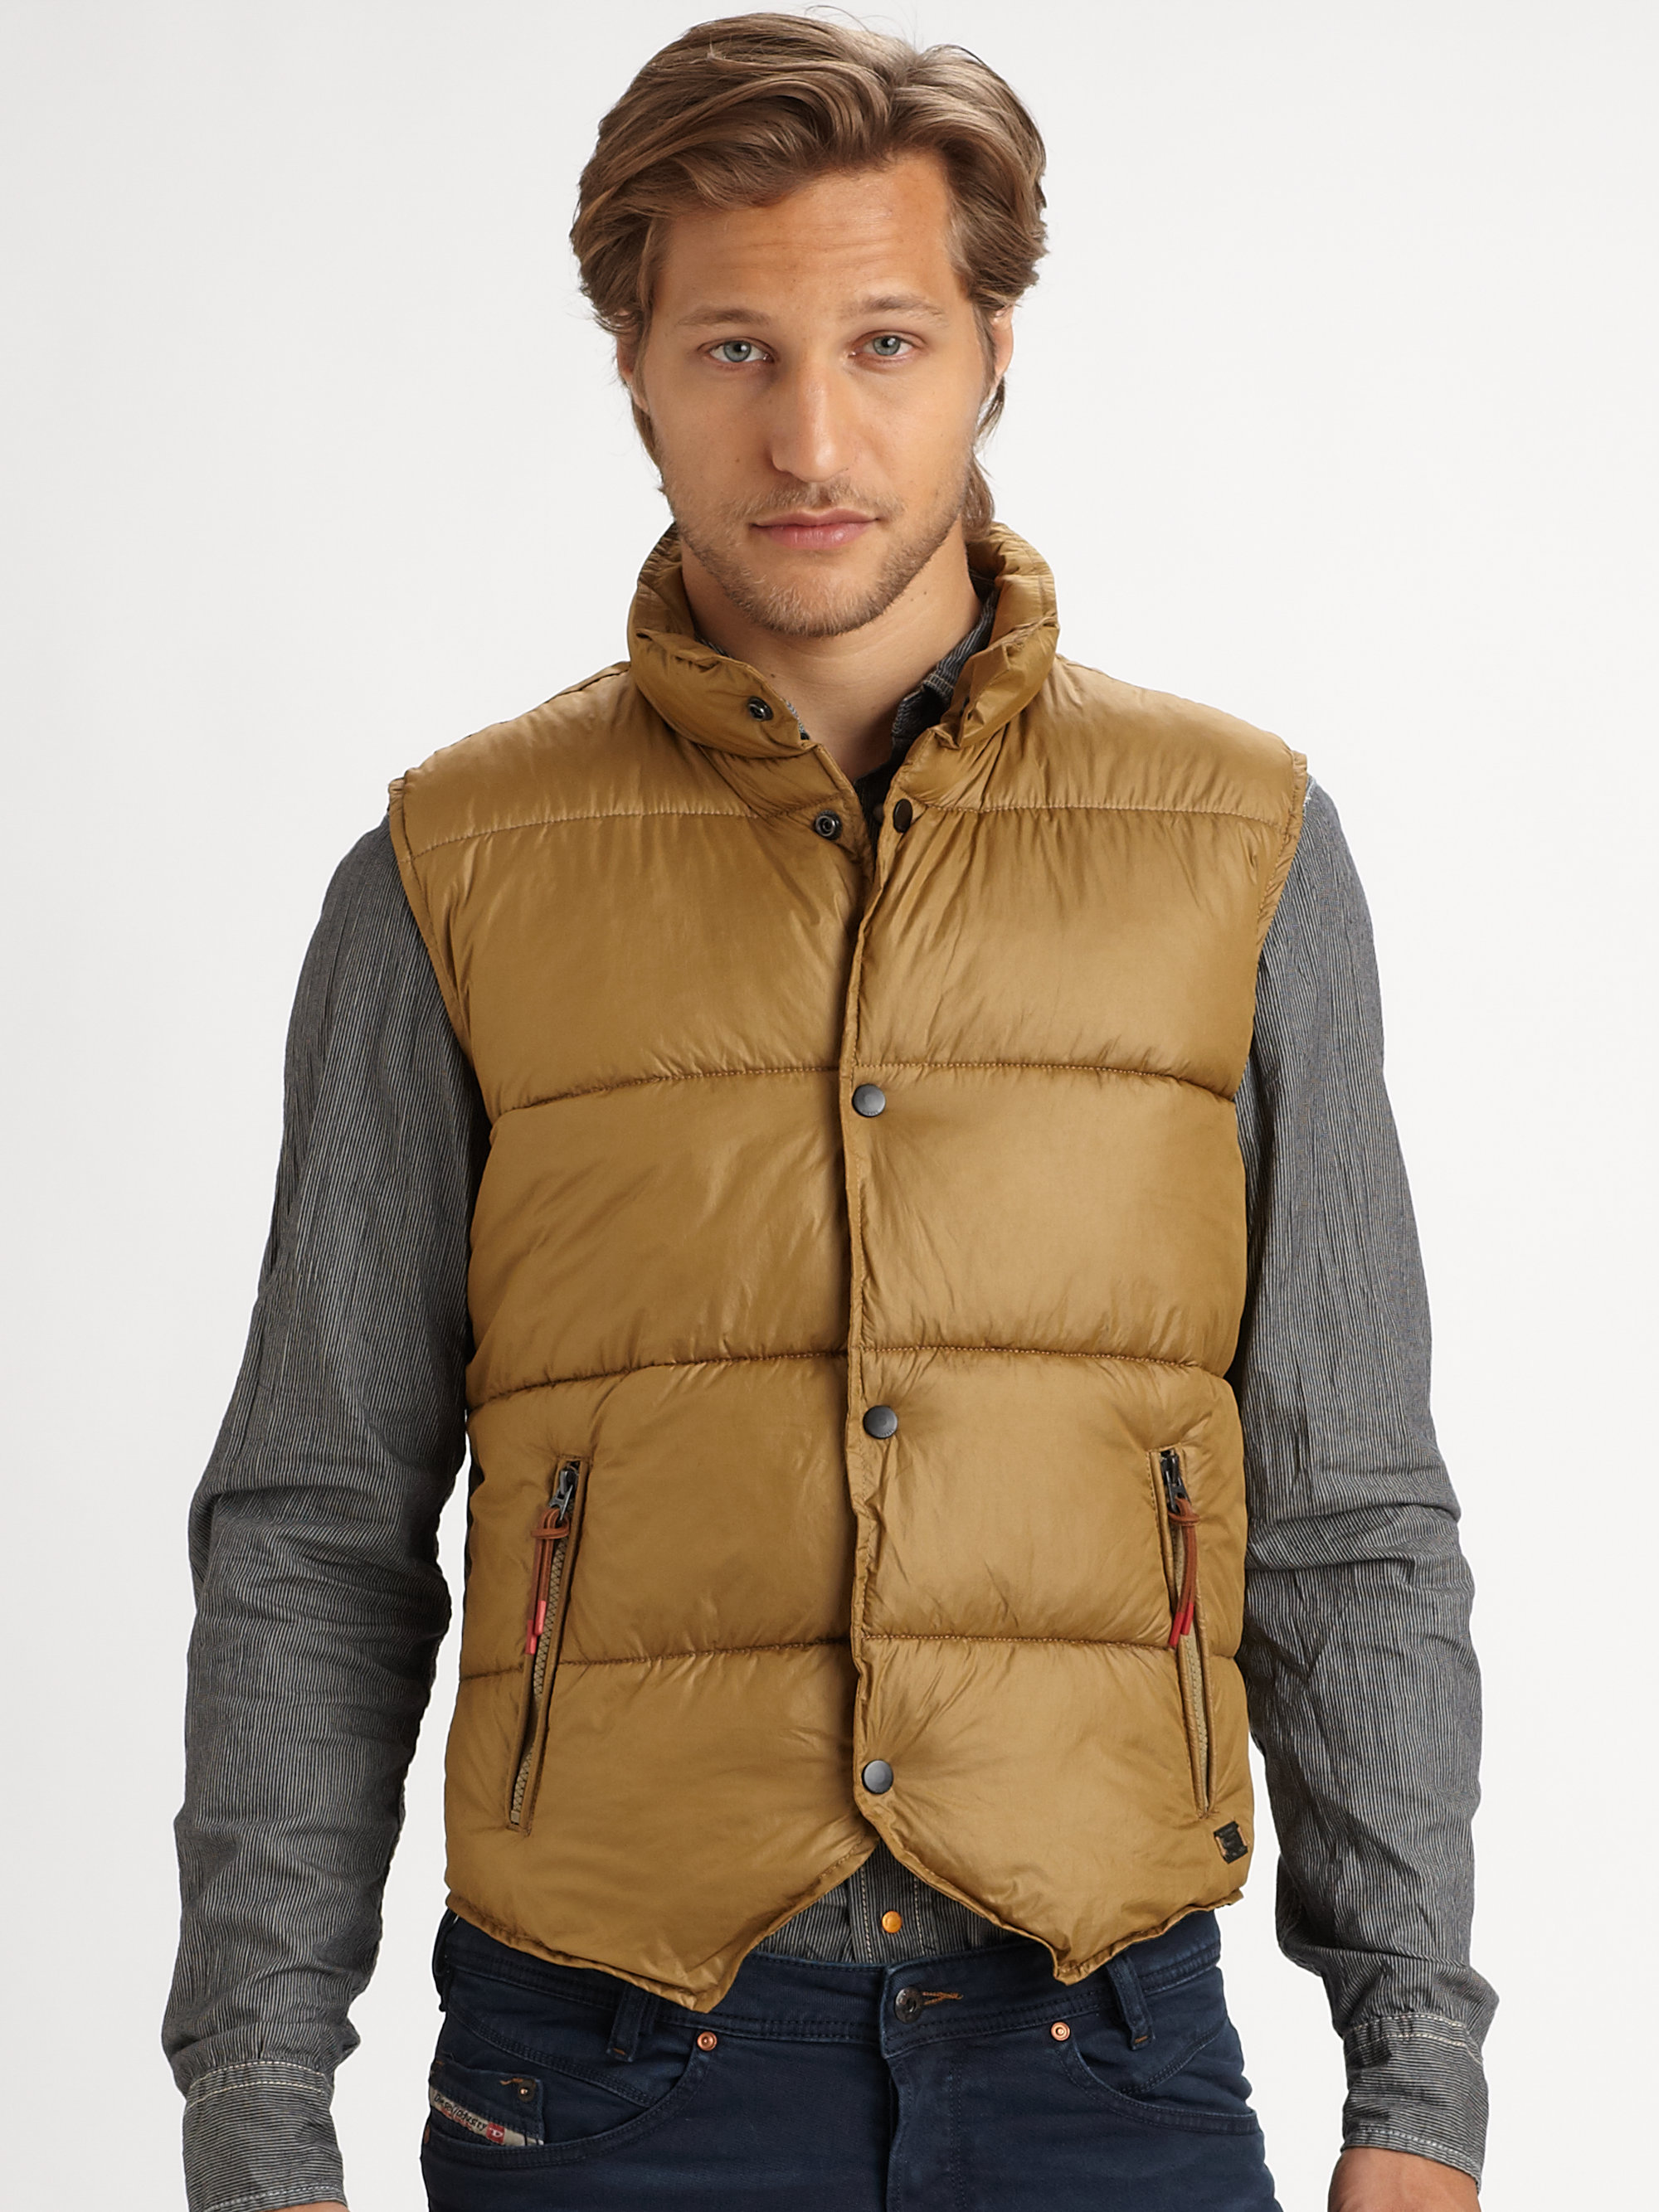 Find and save ideas about Mens puffer vest on Pinterest. | See more ideas about Men's autumn fashion vests, Men's fashion winter vest and Men's casual fall outfits.